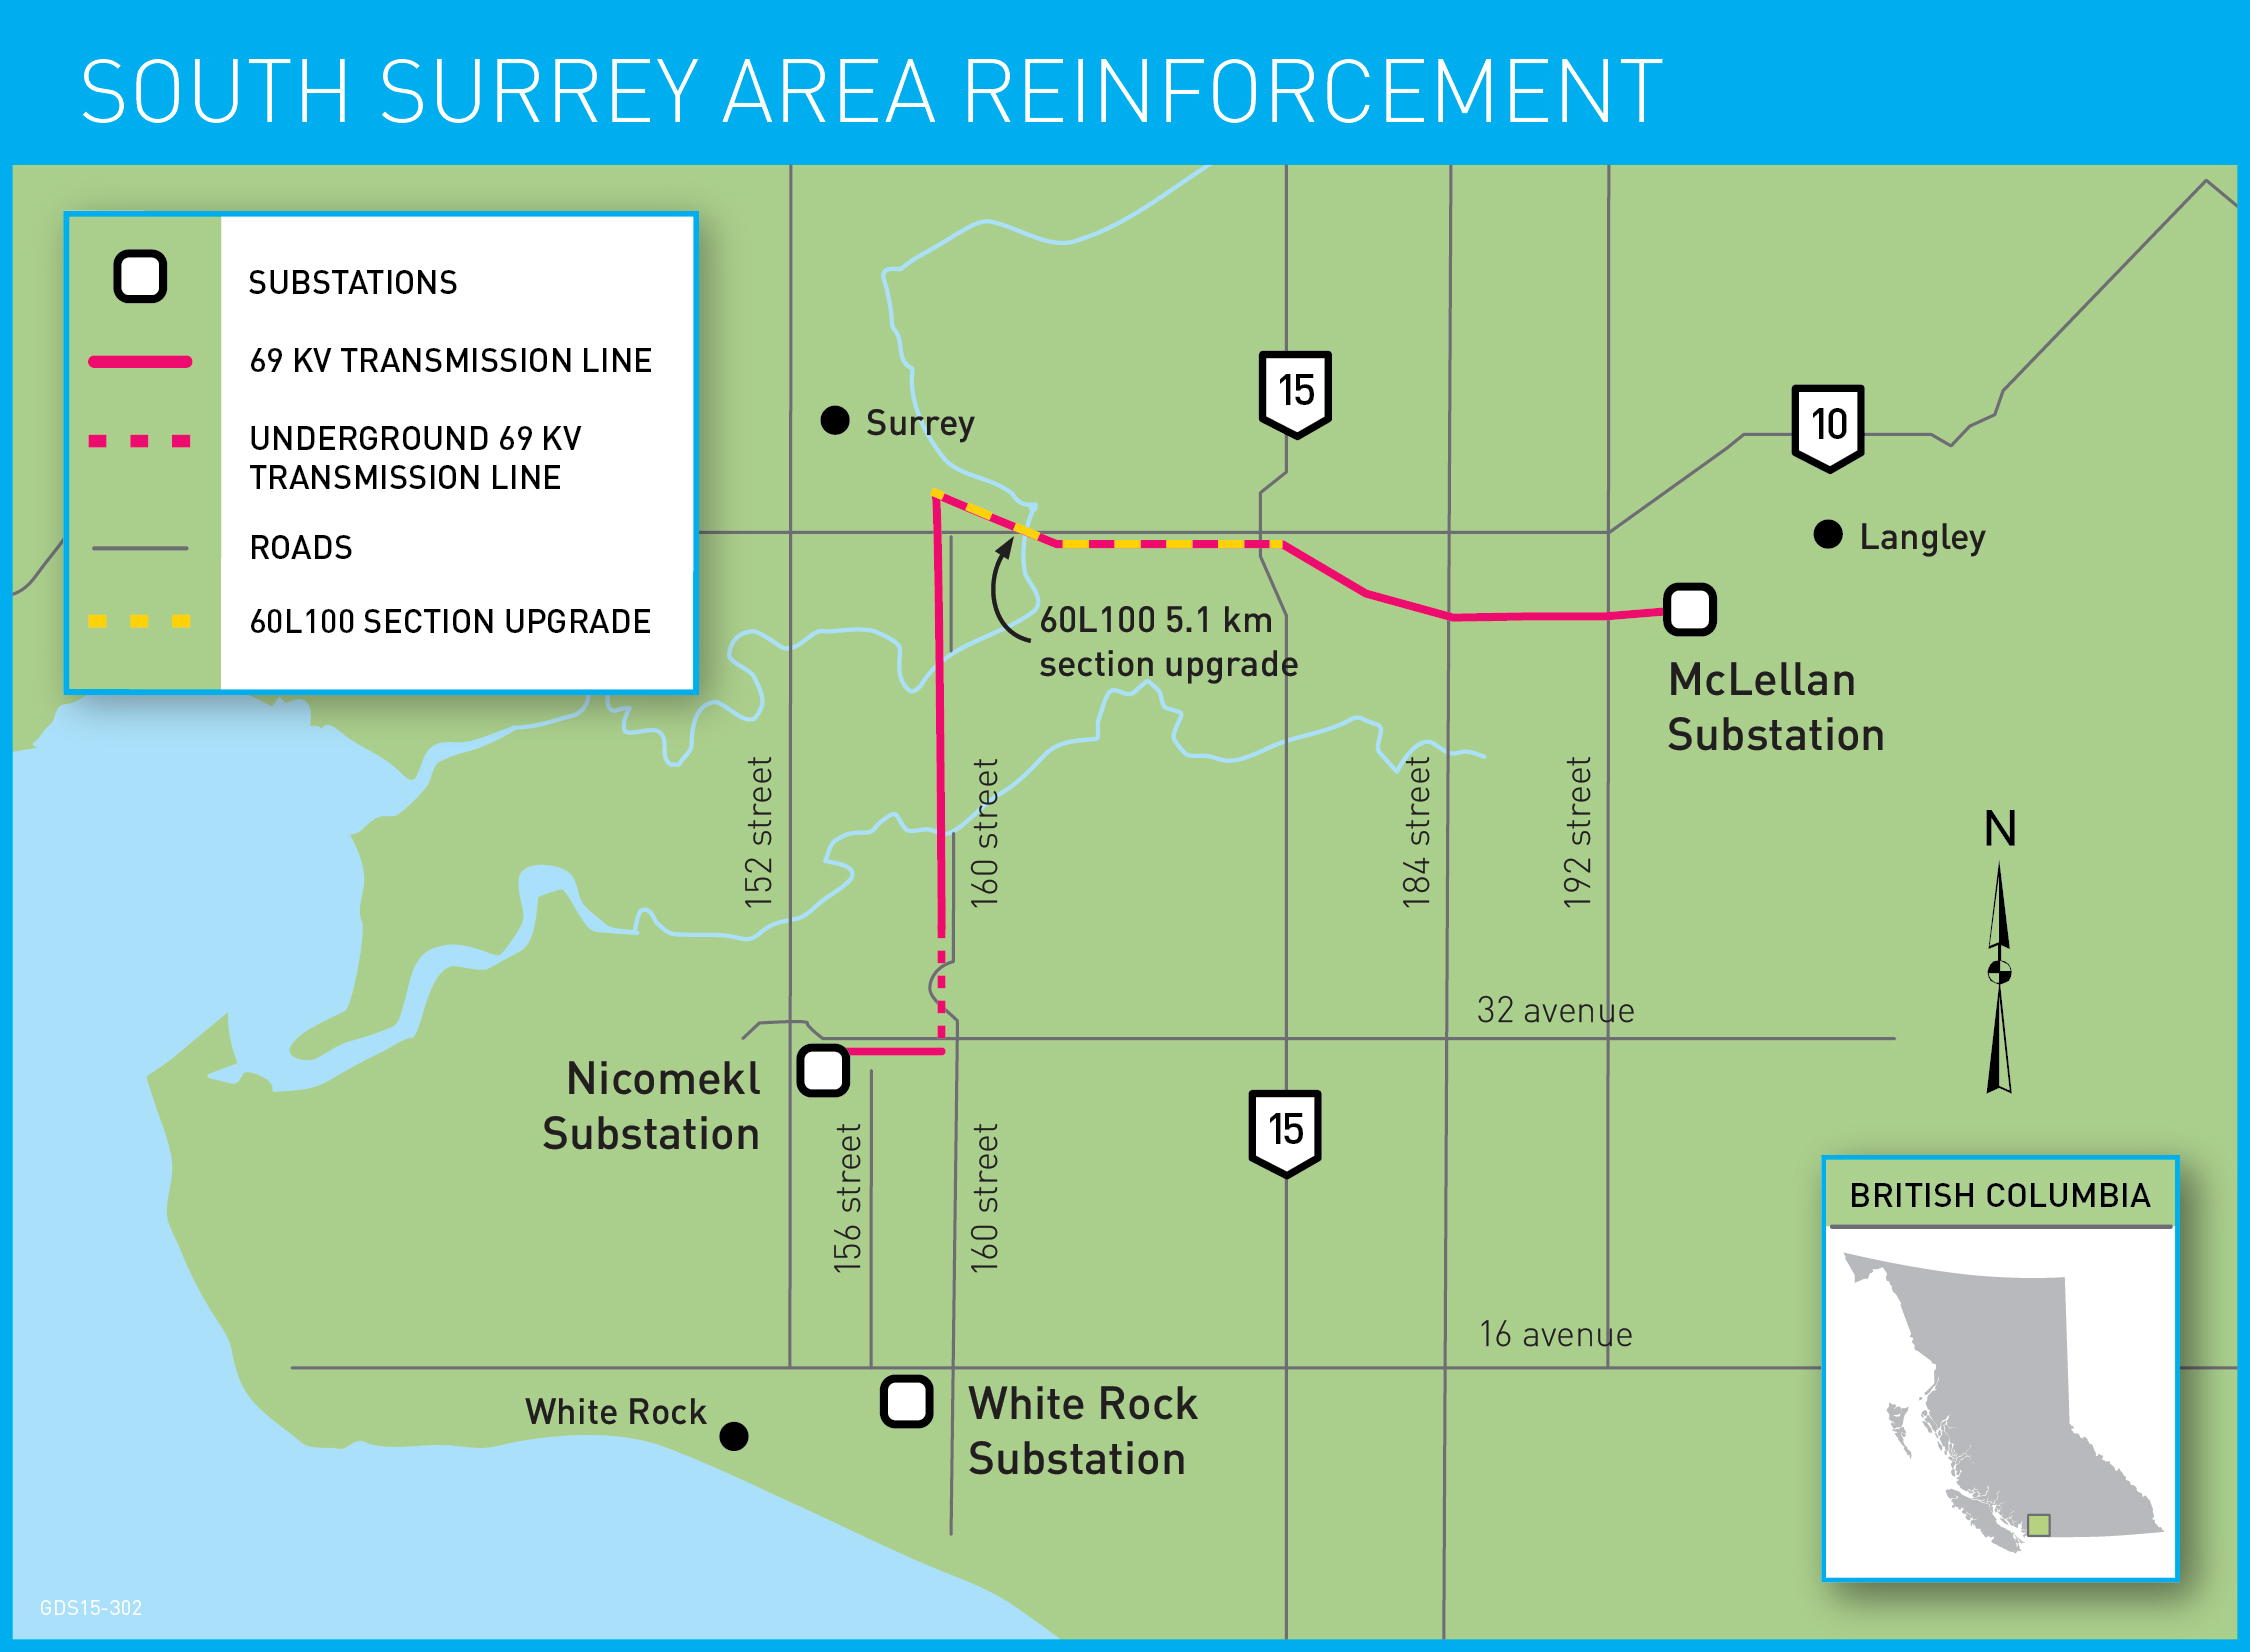 South Surrey Area Reinforcement map